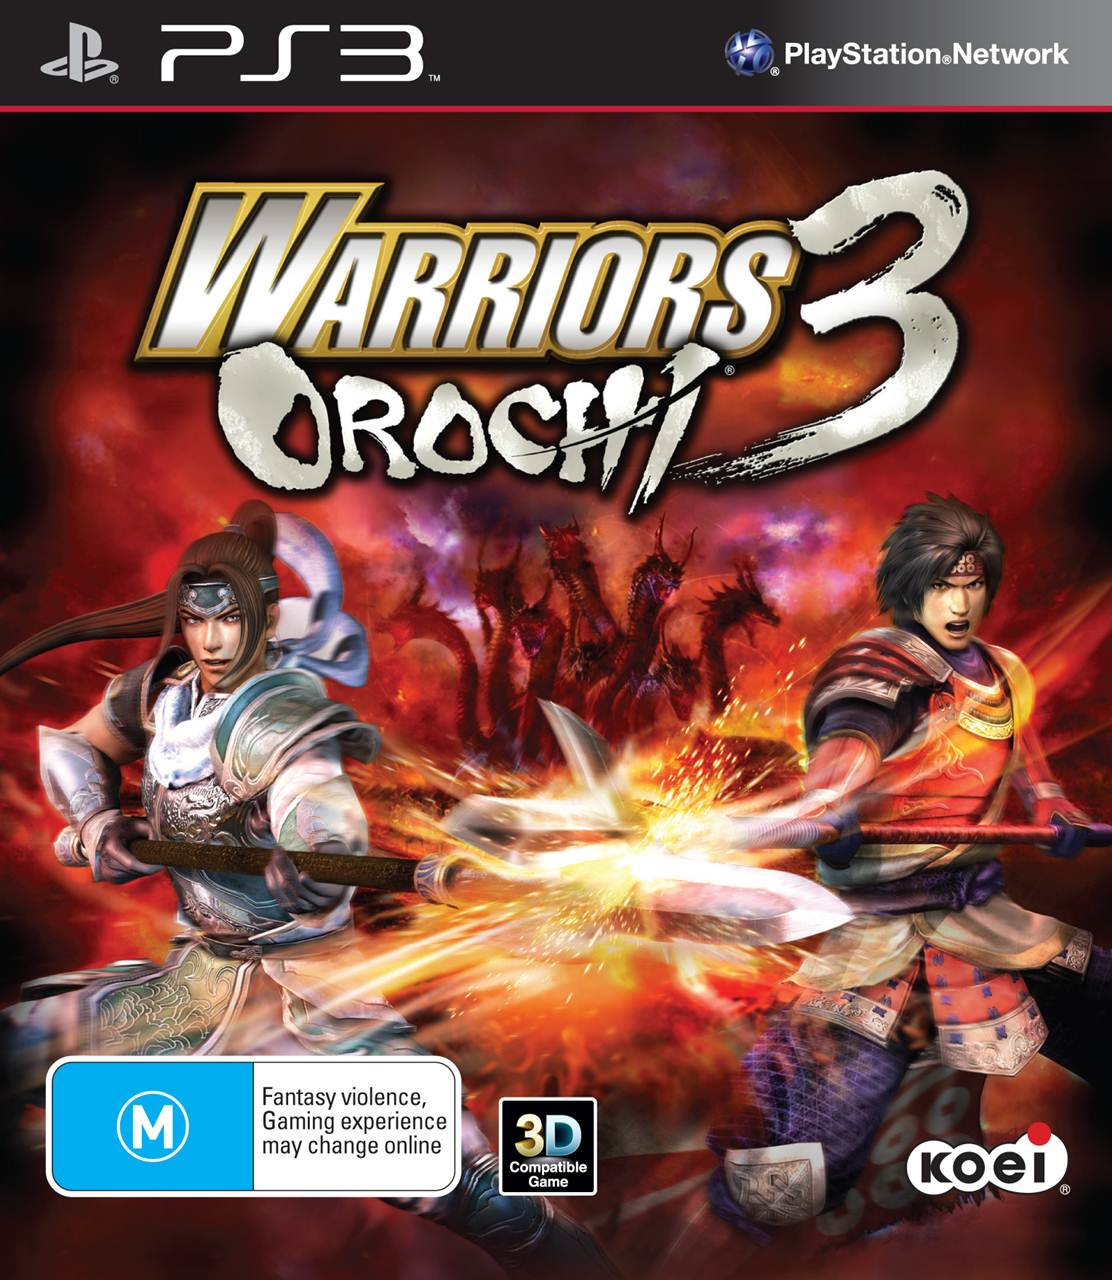 Warriors Orochi 3: It's The Final Pack Shot « GamingBolt